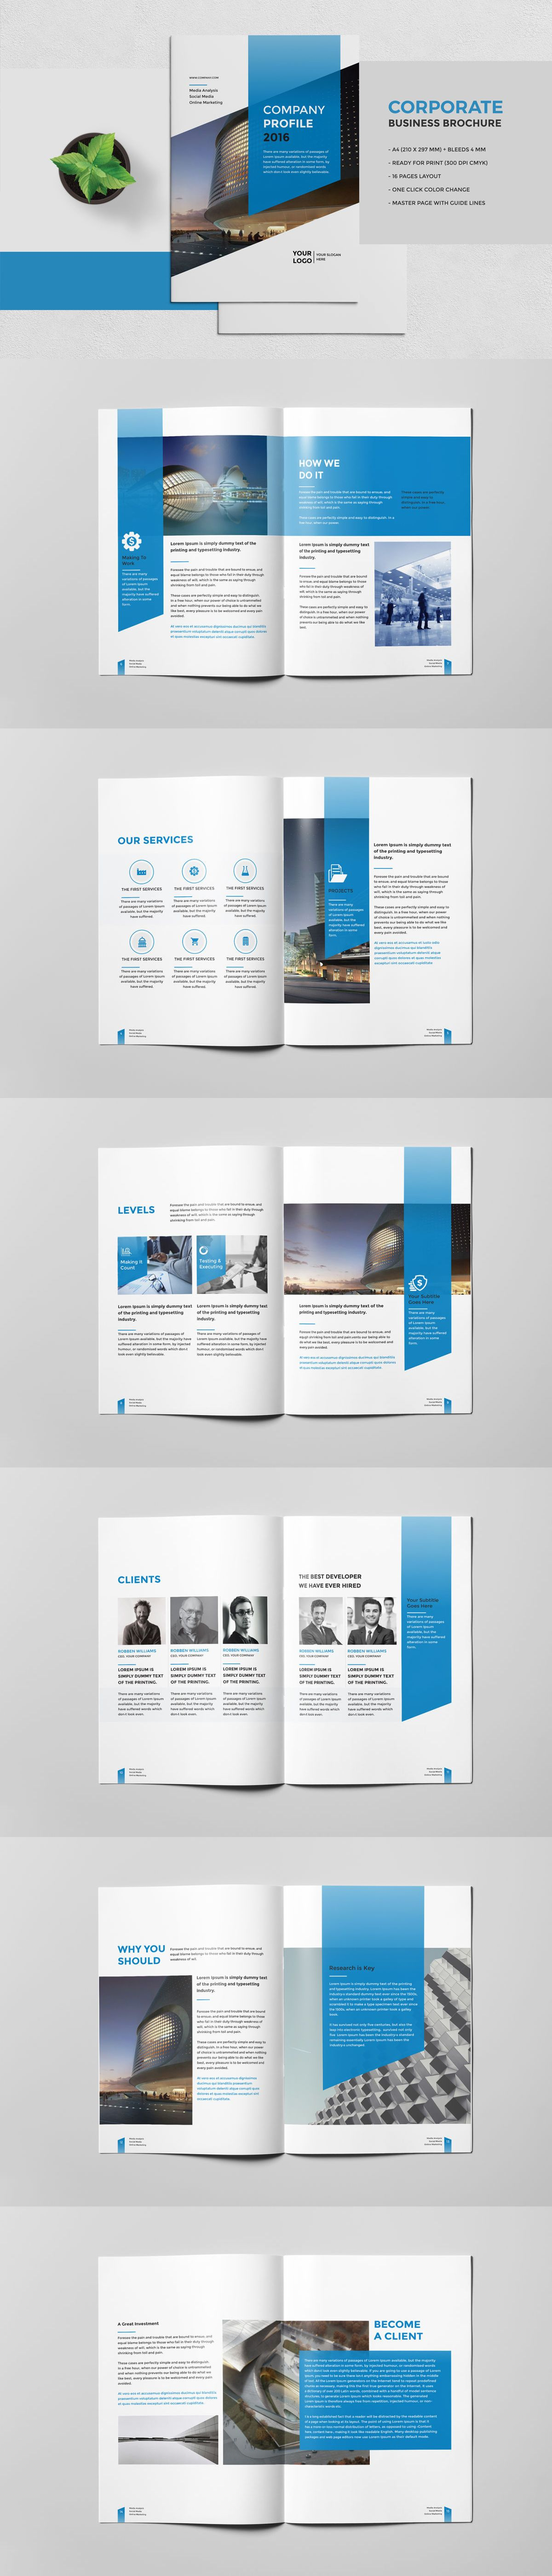 Corporate Business Brochure 16 Pages Template Indesign Indd